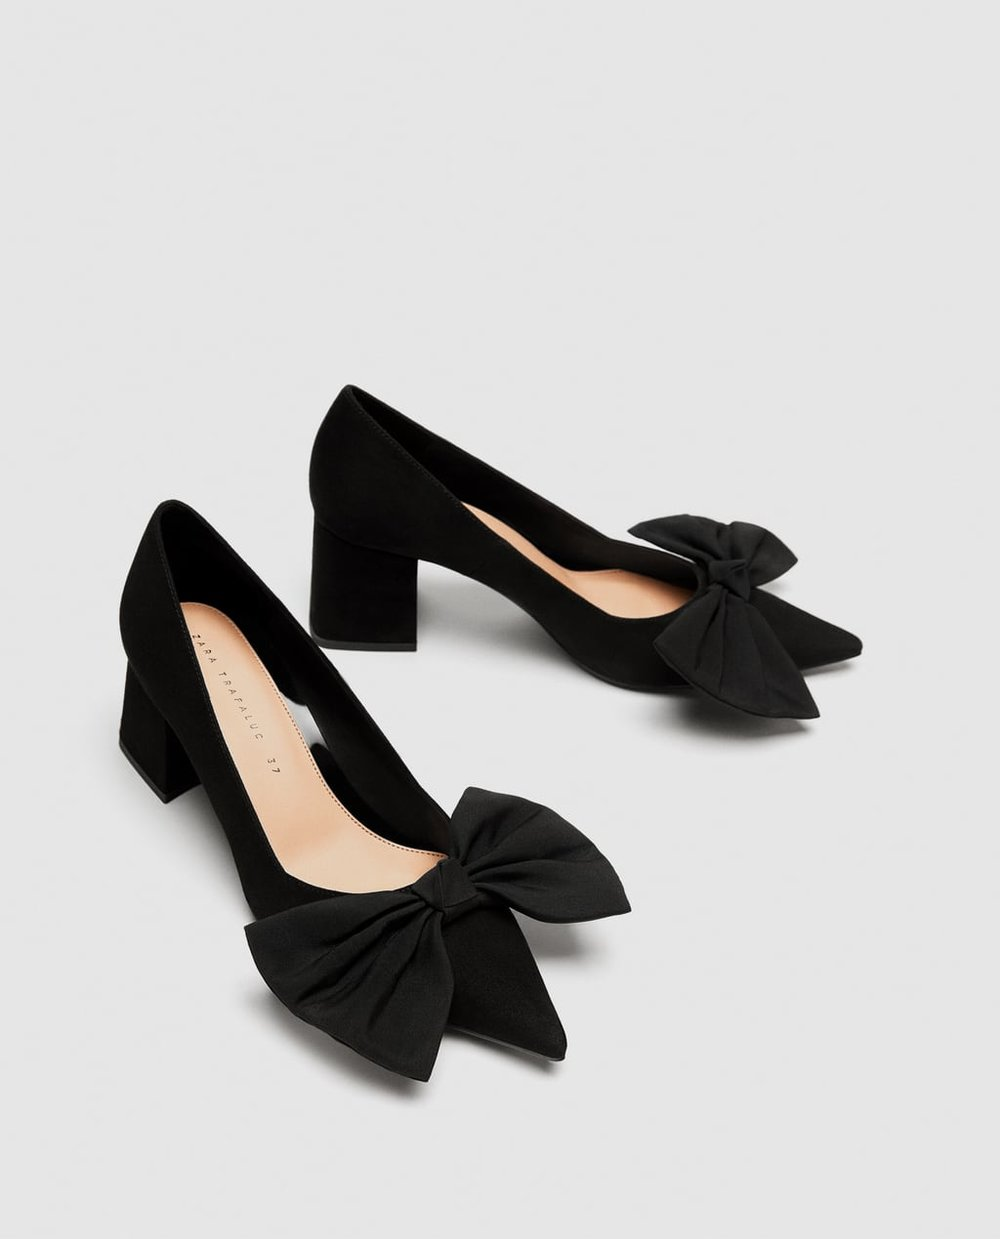 Chic Low Block Heel with Front Bow  Zara £19.99